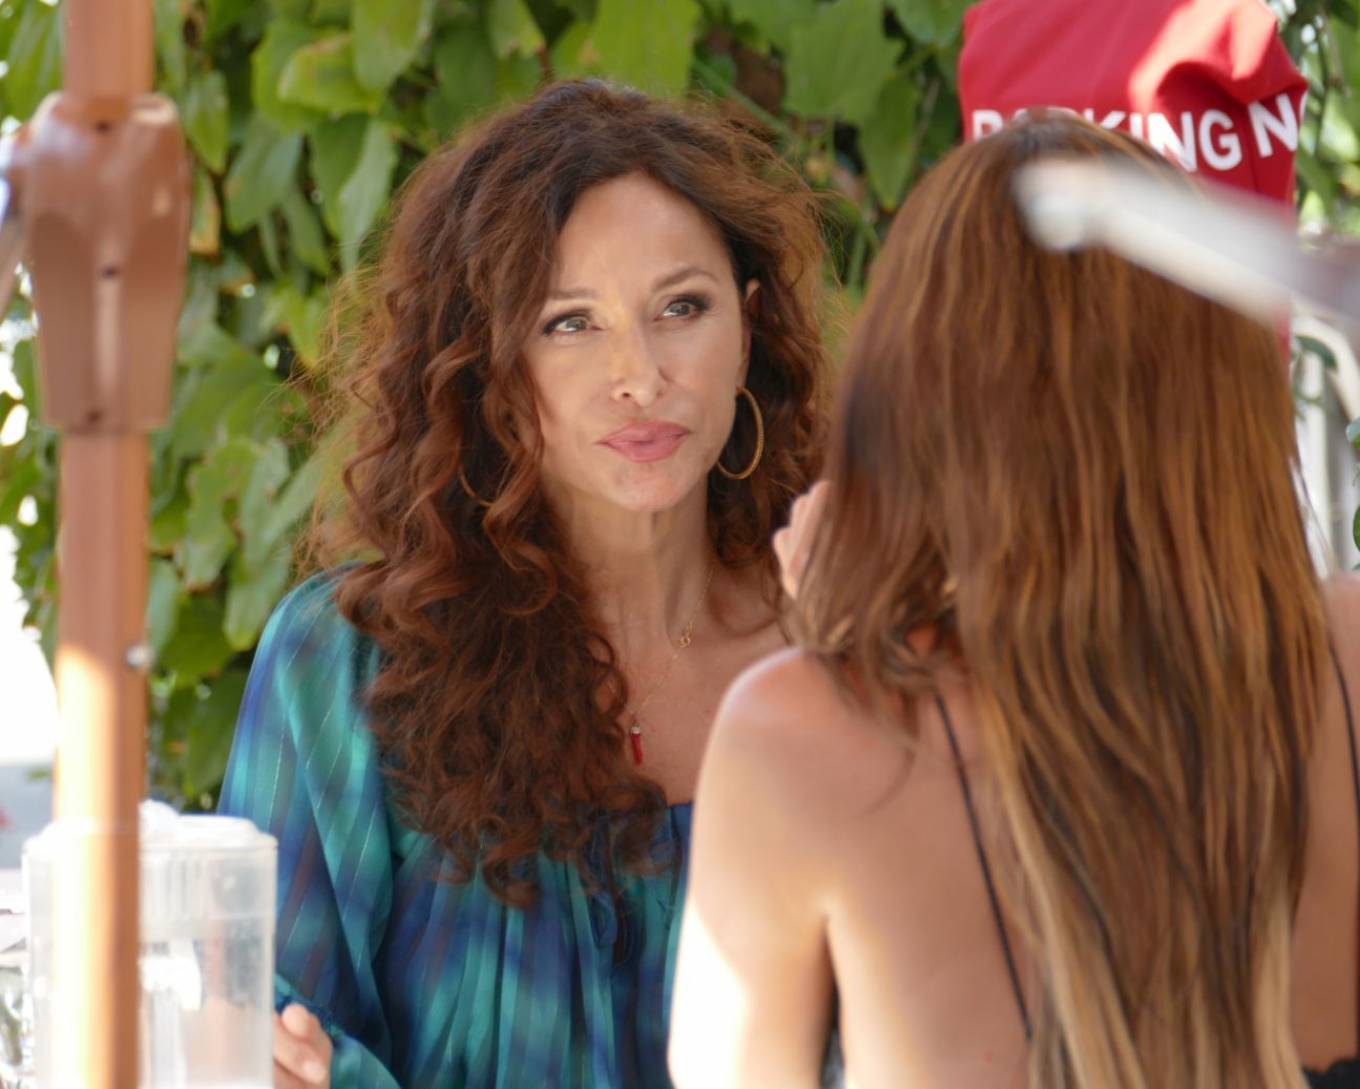 Sofia Milos 2020 : Sofia Milos – Seen at a Lunch With Female Friend-02